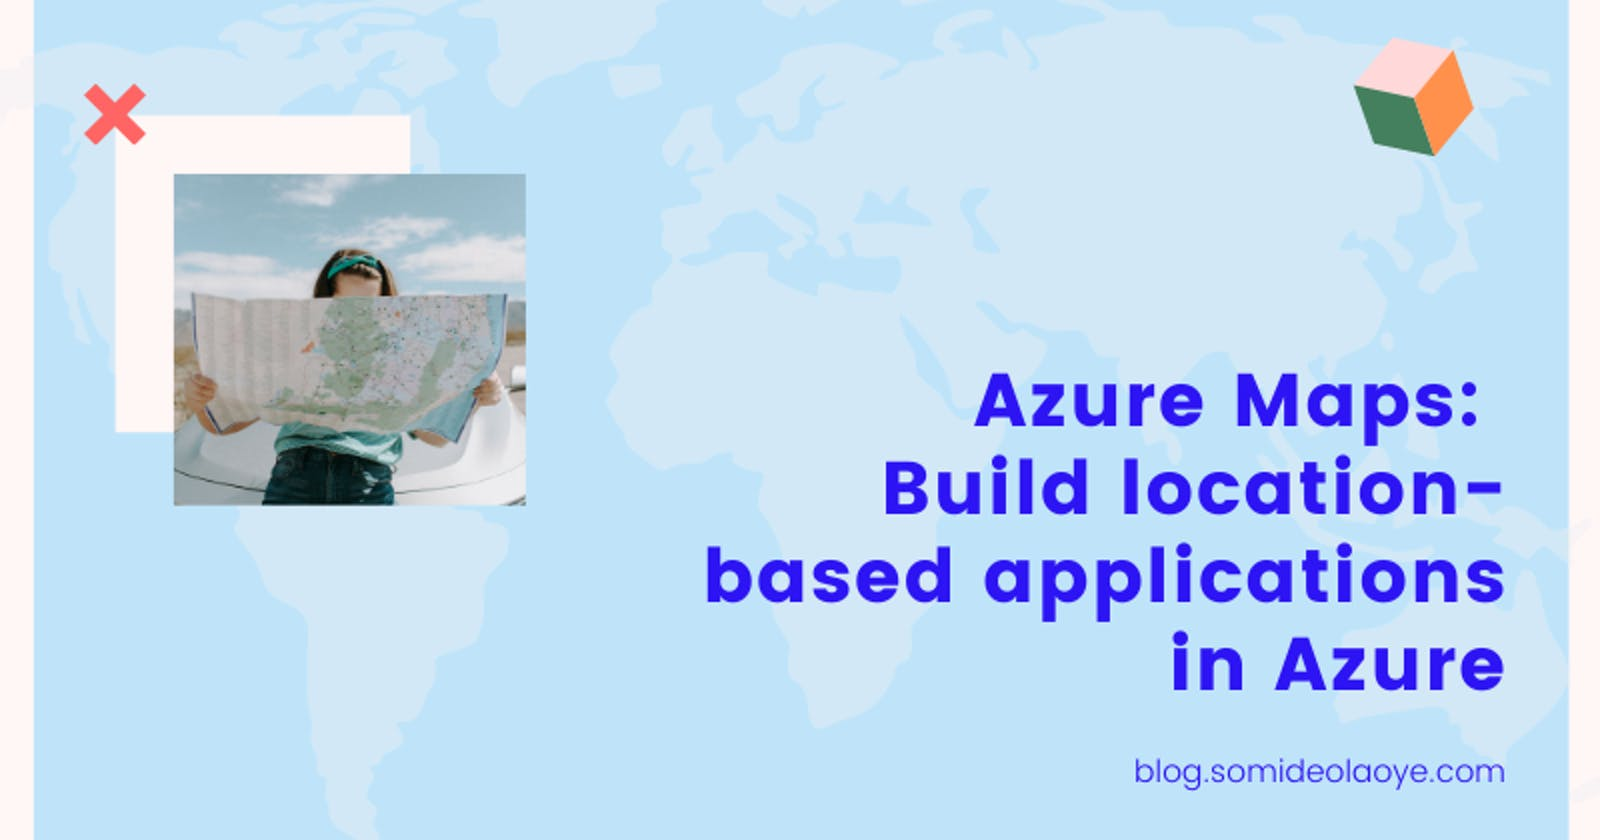 Introduction to Azure Maps: Build location-based applications in Azure